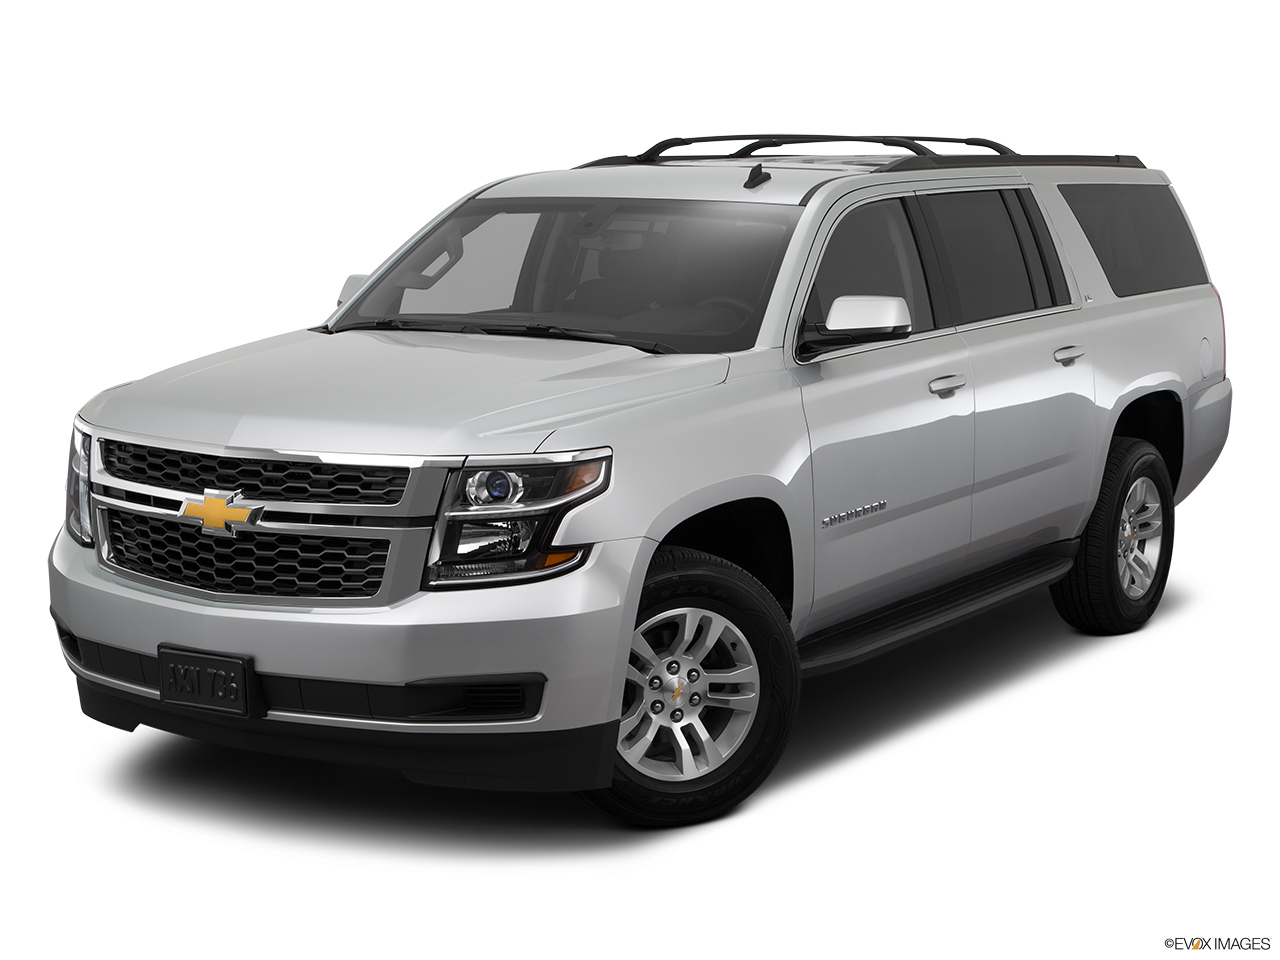 2016 chevrolet suburban prices in uae gulf specs reviews for dubai abu dhabi and sharjah. Black Bedroom Furniture Sets. Home Design Ideas